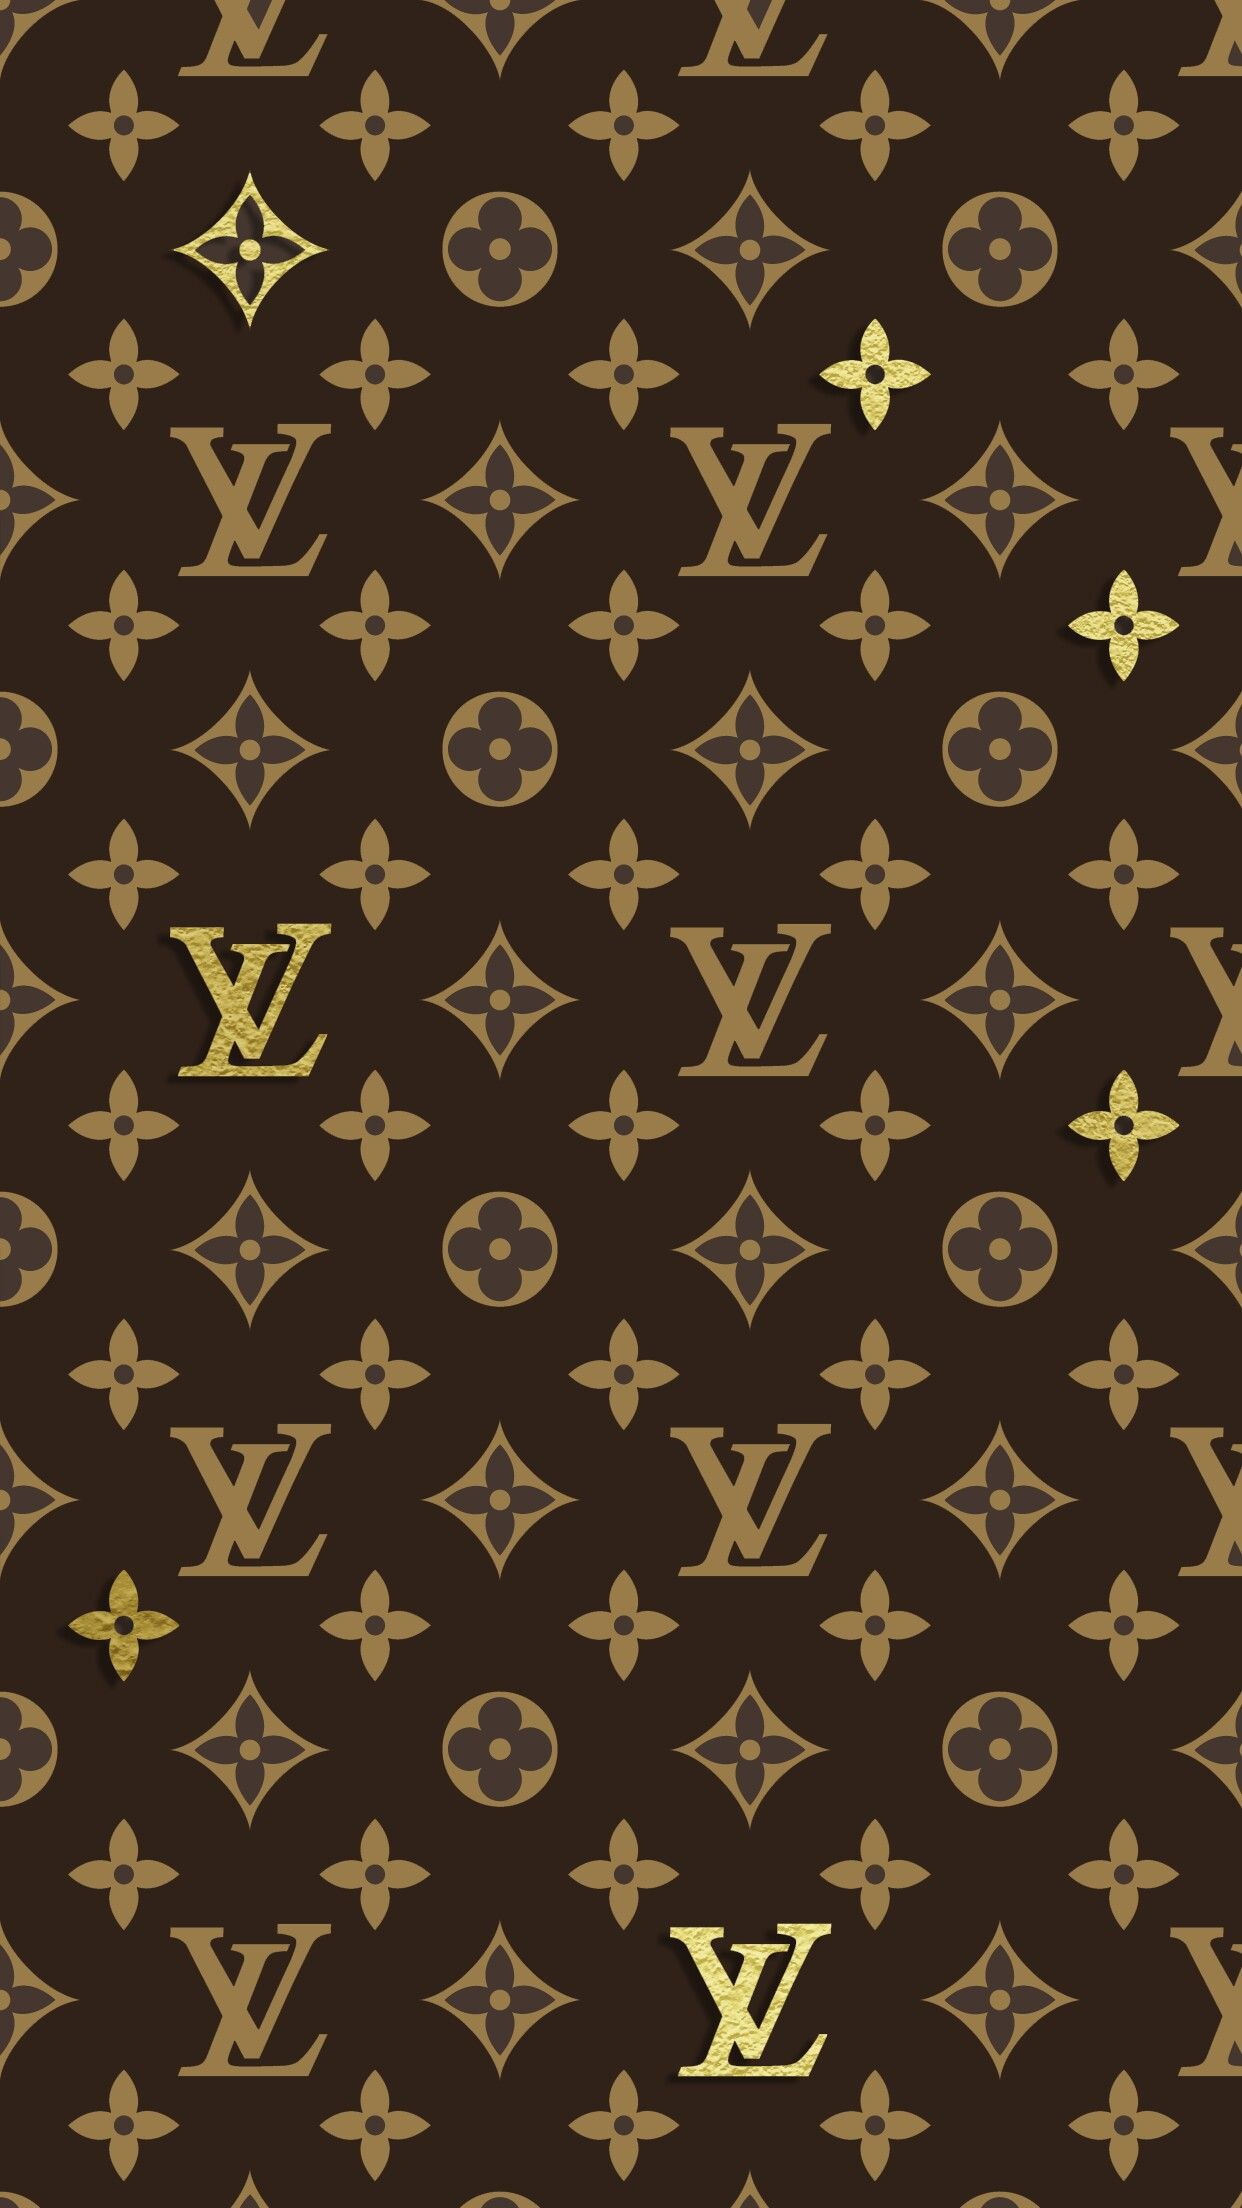 Logo Louis Vuitton Louis Vuitton Monogram Apple Watch Wallpaper Iphone  Wallpaper